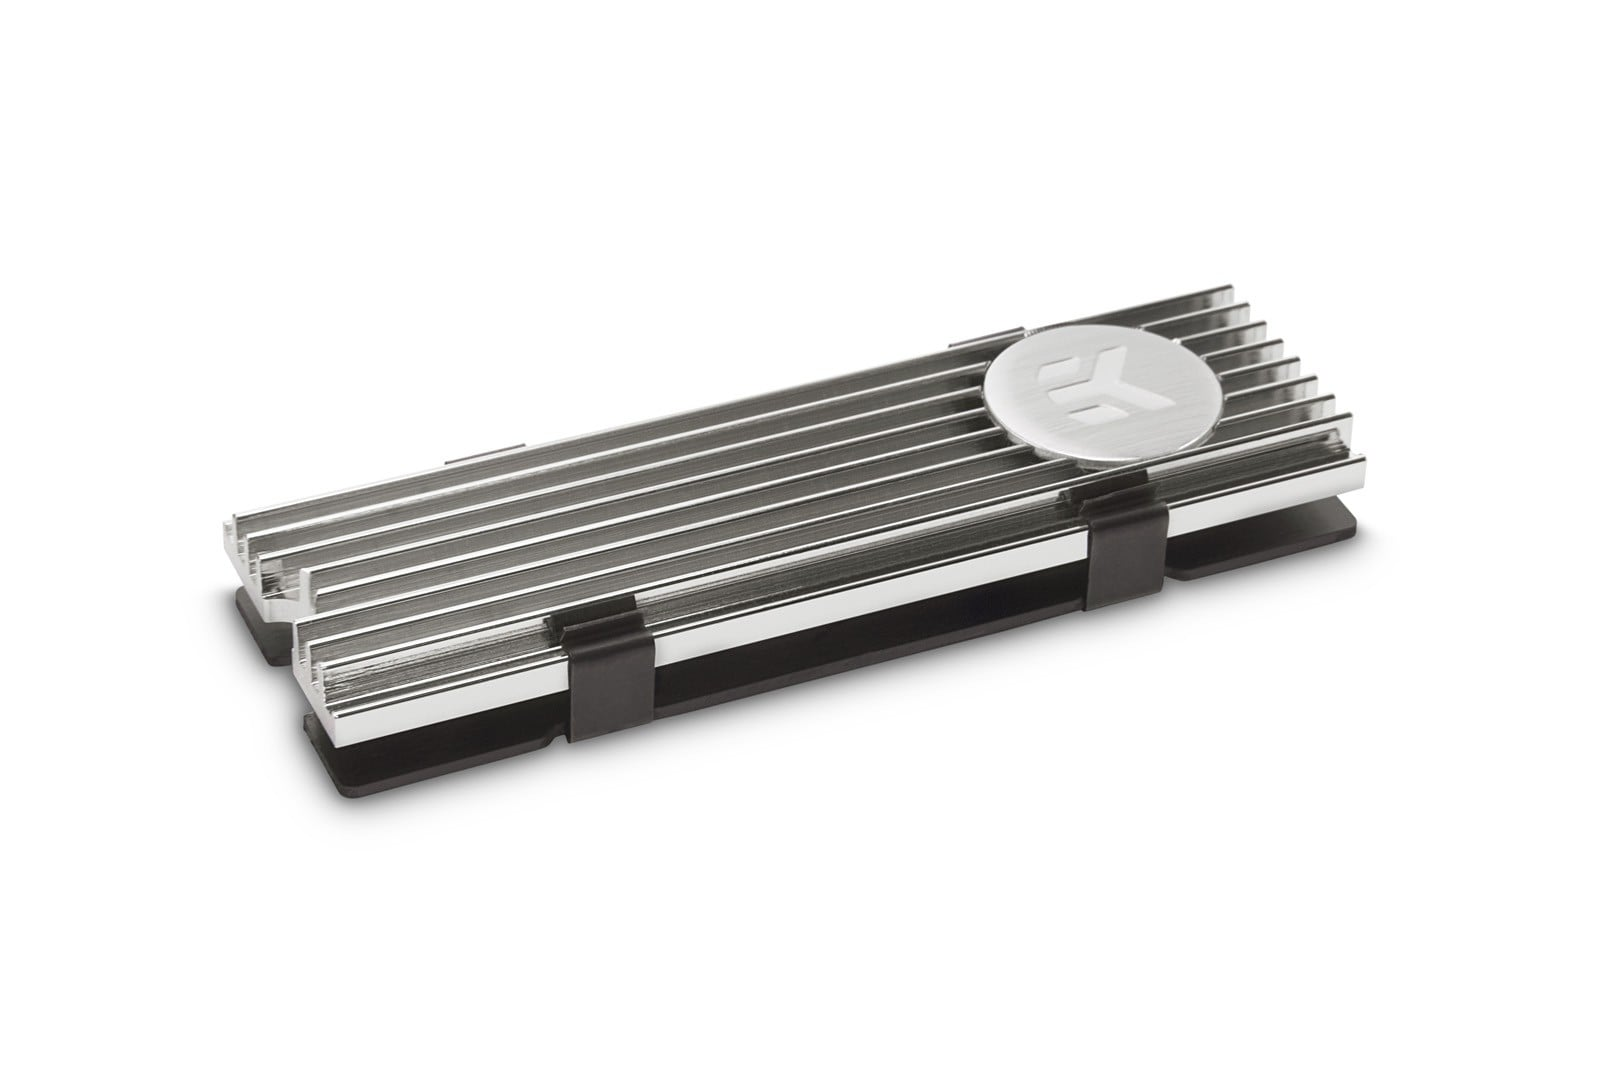 EK-M.2 NVMe Heatsink – Nickel